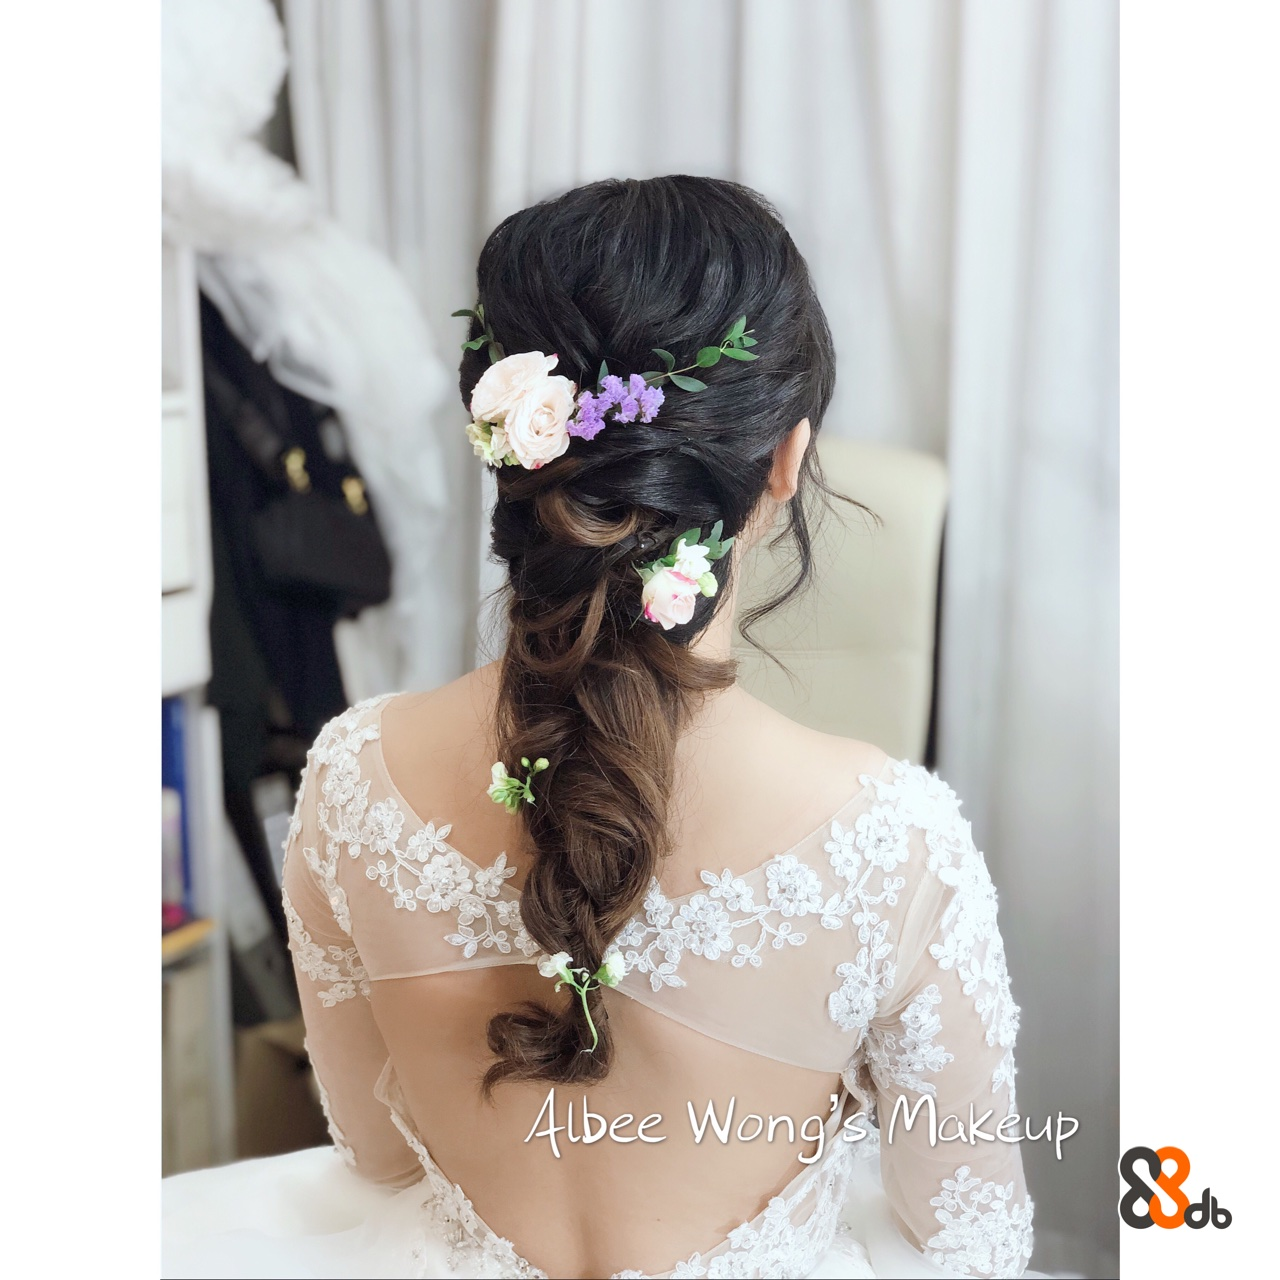 4lbee Wong Makeup  Hair,Headpiece,Clothing,Hairstyle,Hair accessory